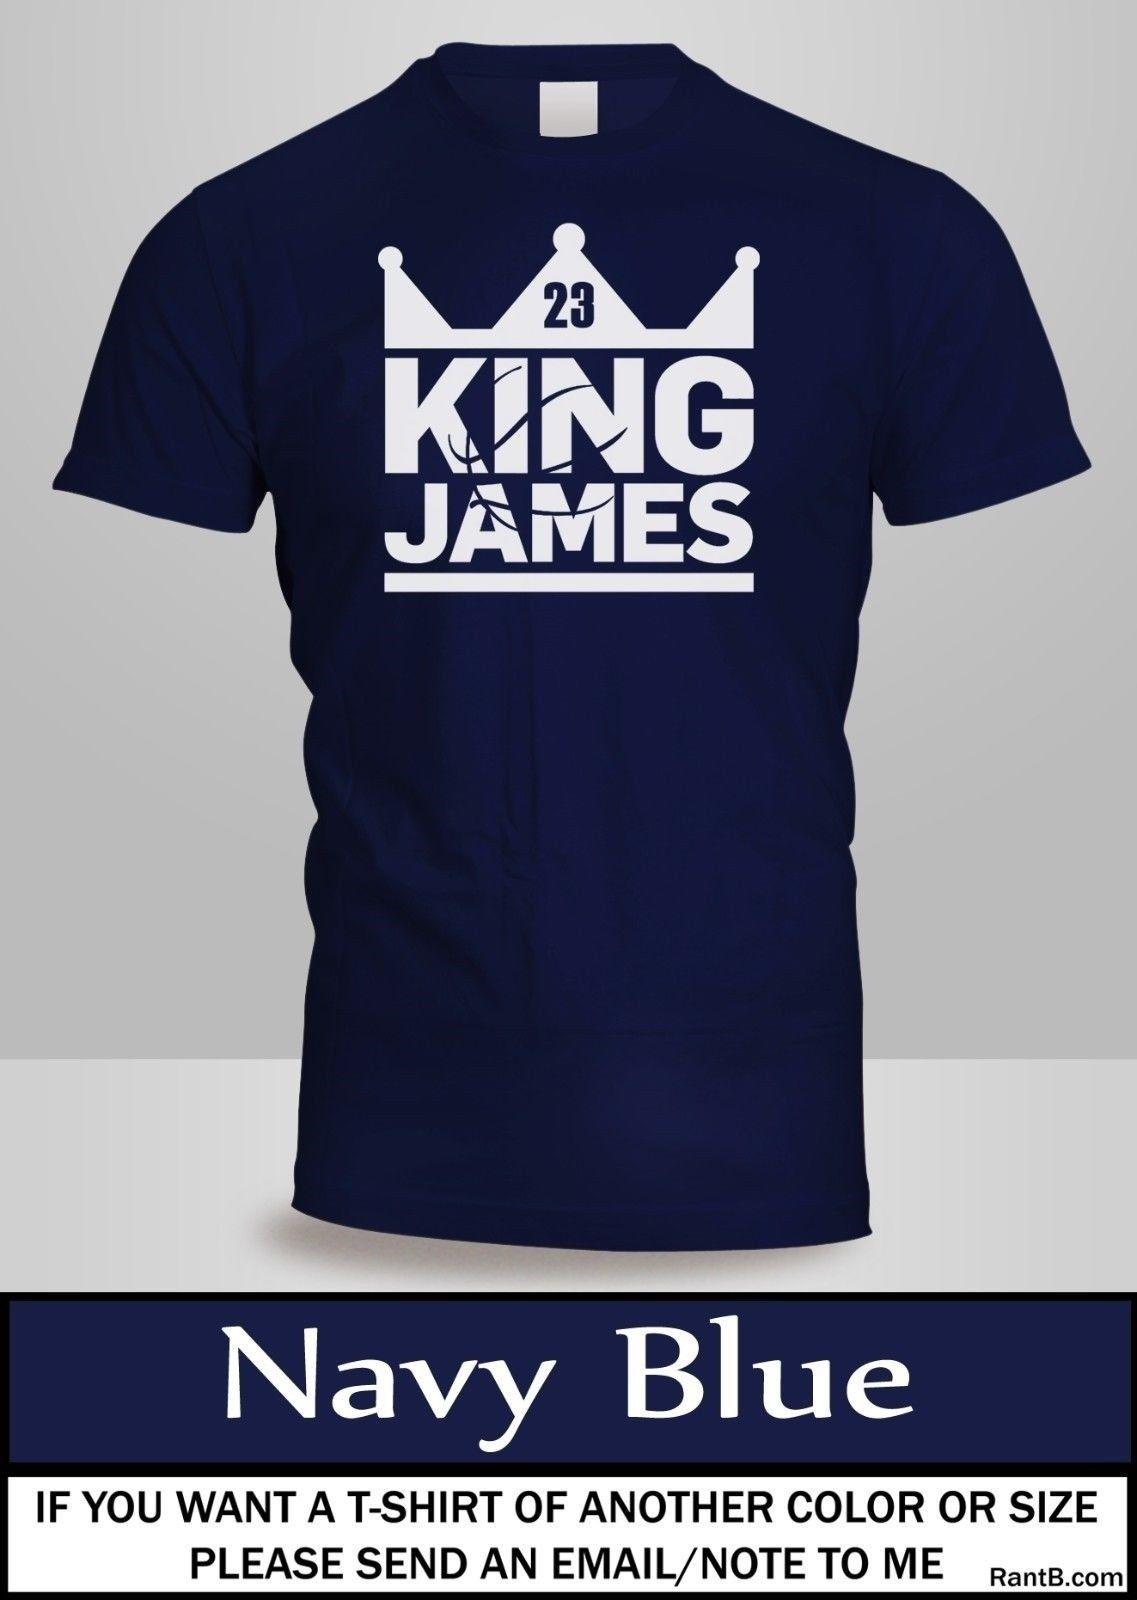 3490110e KING LEBRON JAMES BASKETBALL GRAPHIC T Shirt Mens Navy Colour Tee New  2Funny Unisex Casual Crazy Tee Shirts Novelty T Shirt From Besthappystore,  ...